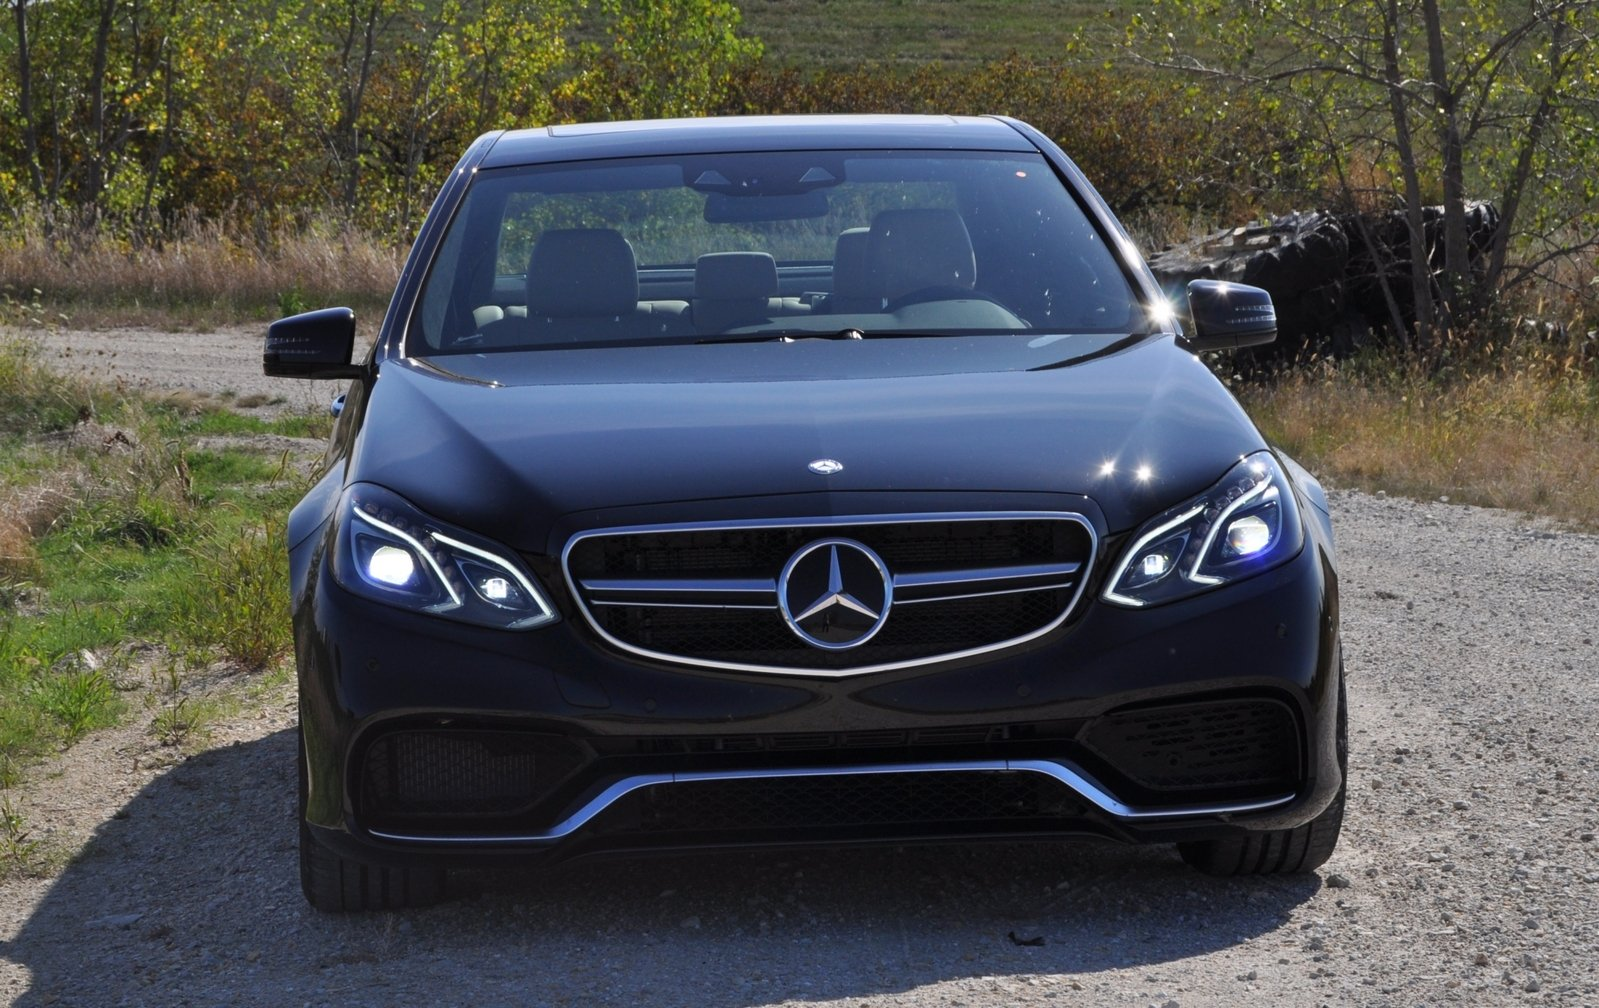 2014 mercedes benz e63 amg s model driven picture 527314 car review top speed. Black Bedroom Furniture Sets. Home Design Ideas